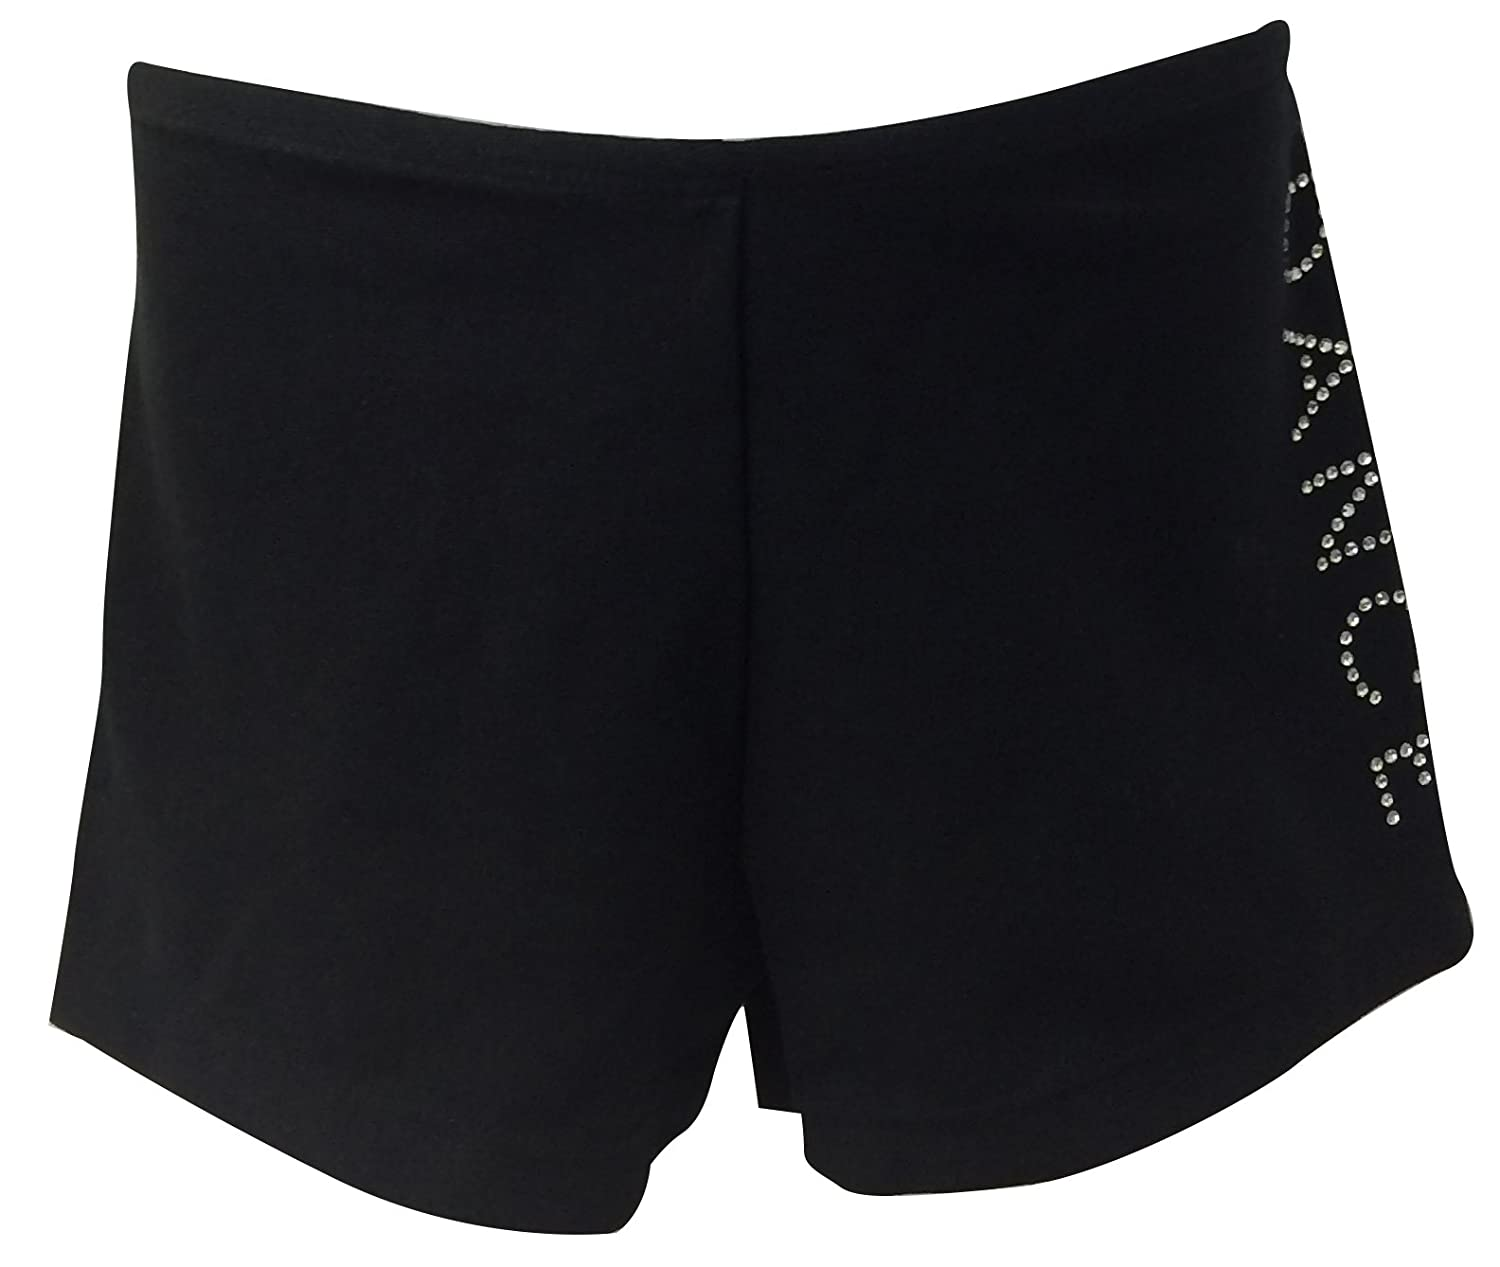 Big Girls Black Dance/Gym Shorts with Rhinestones Dance Print